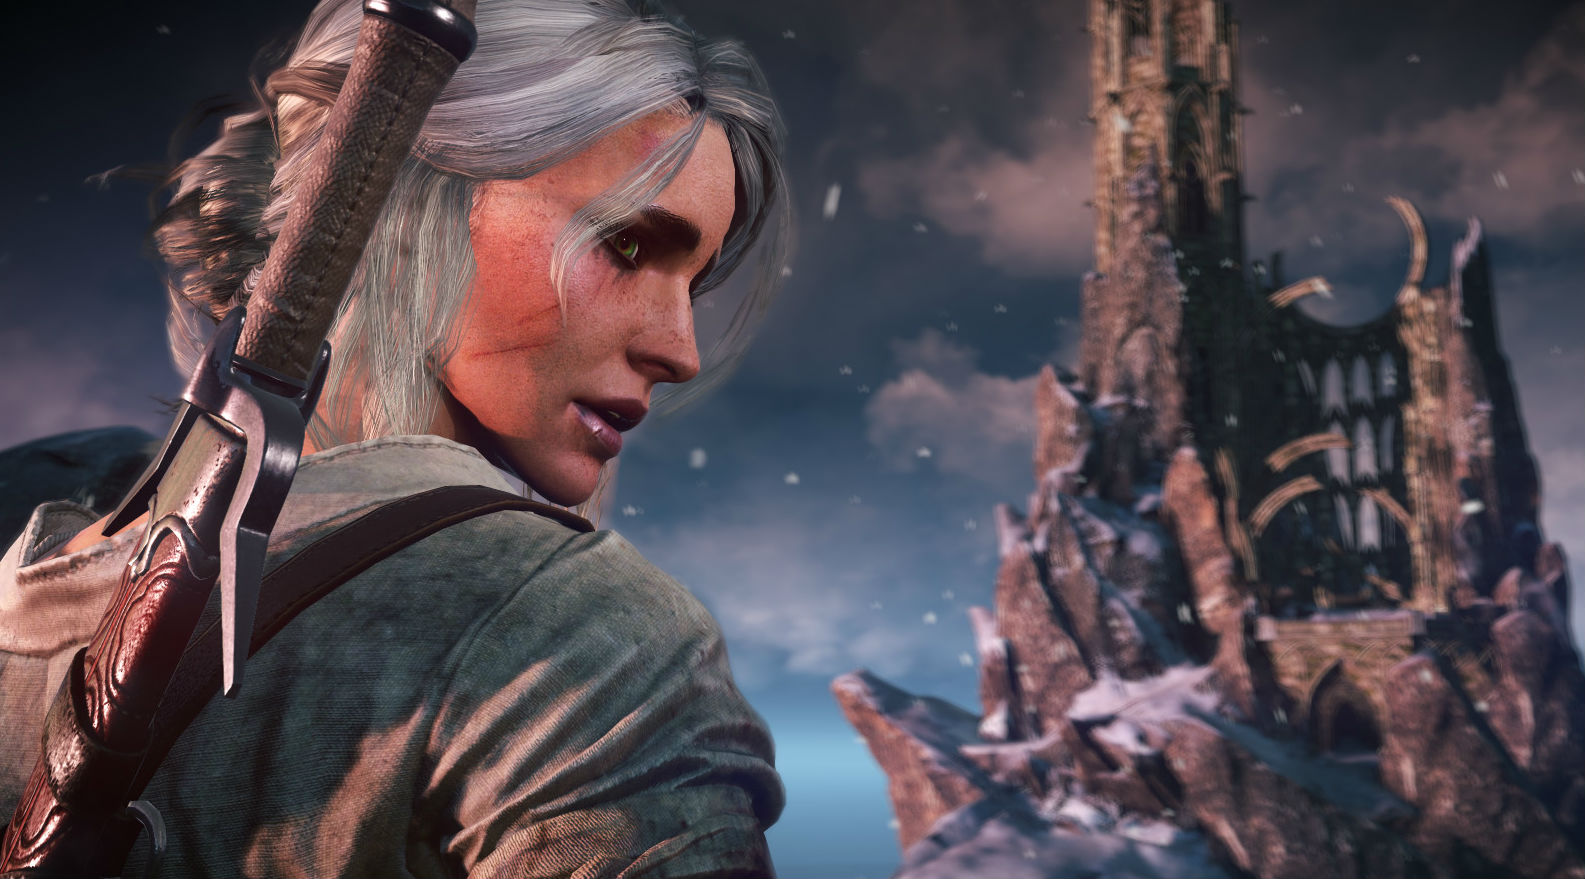 CD Projekt Red is now the second largest European game studio, only behind Ubisoft screenshot